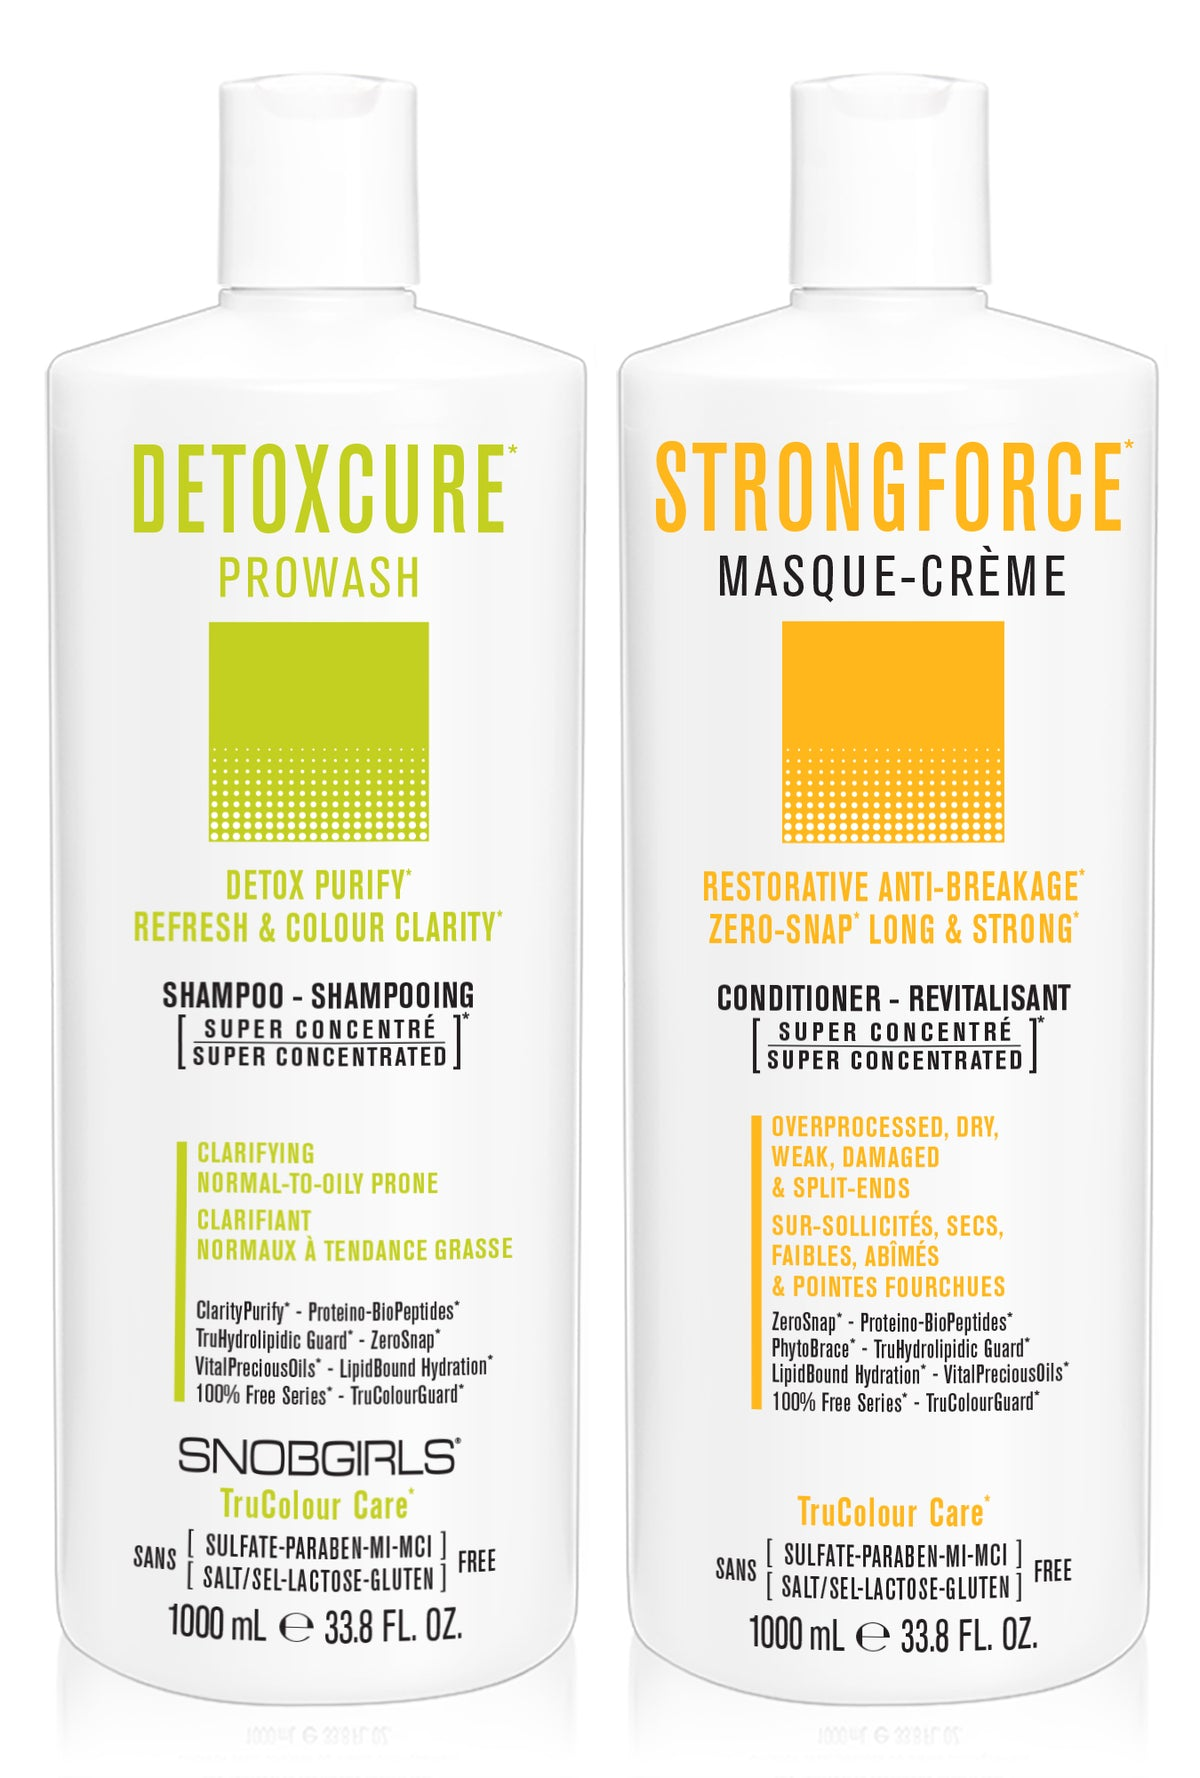 DUO - DETOXCURE Prowash + STRONGFORCE Masque-Creme 33.8 oz - SNOBGIRLS.com